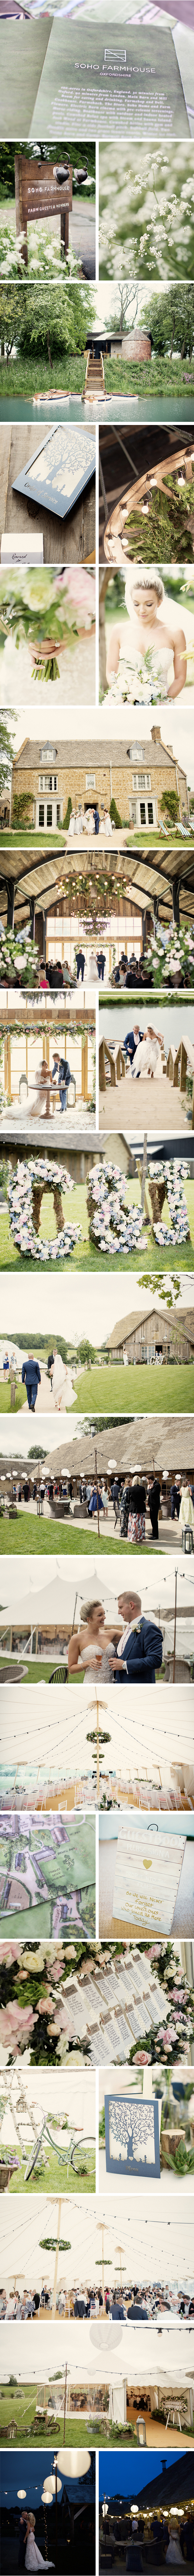 Charlotte & James PapaKata Sperry Wedding at Soho Farmhouse, Oxfordshire